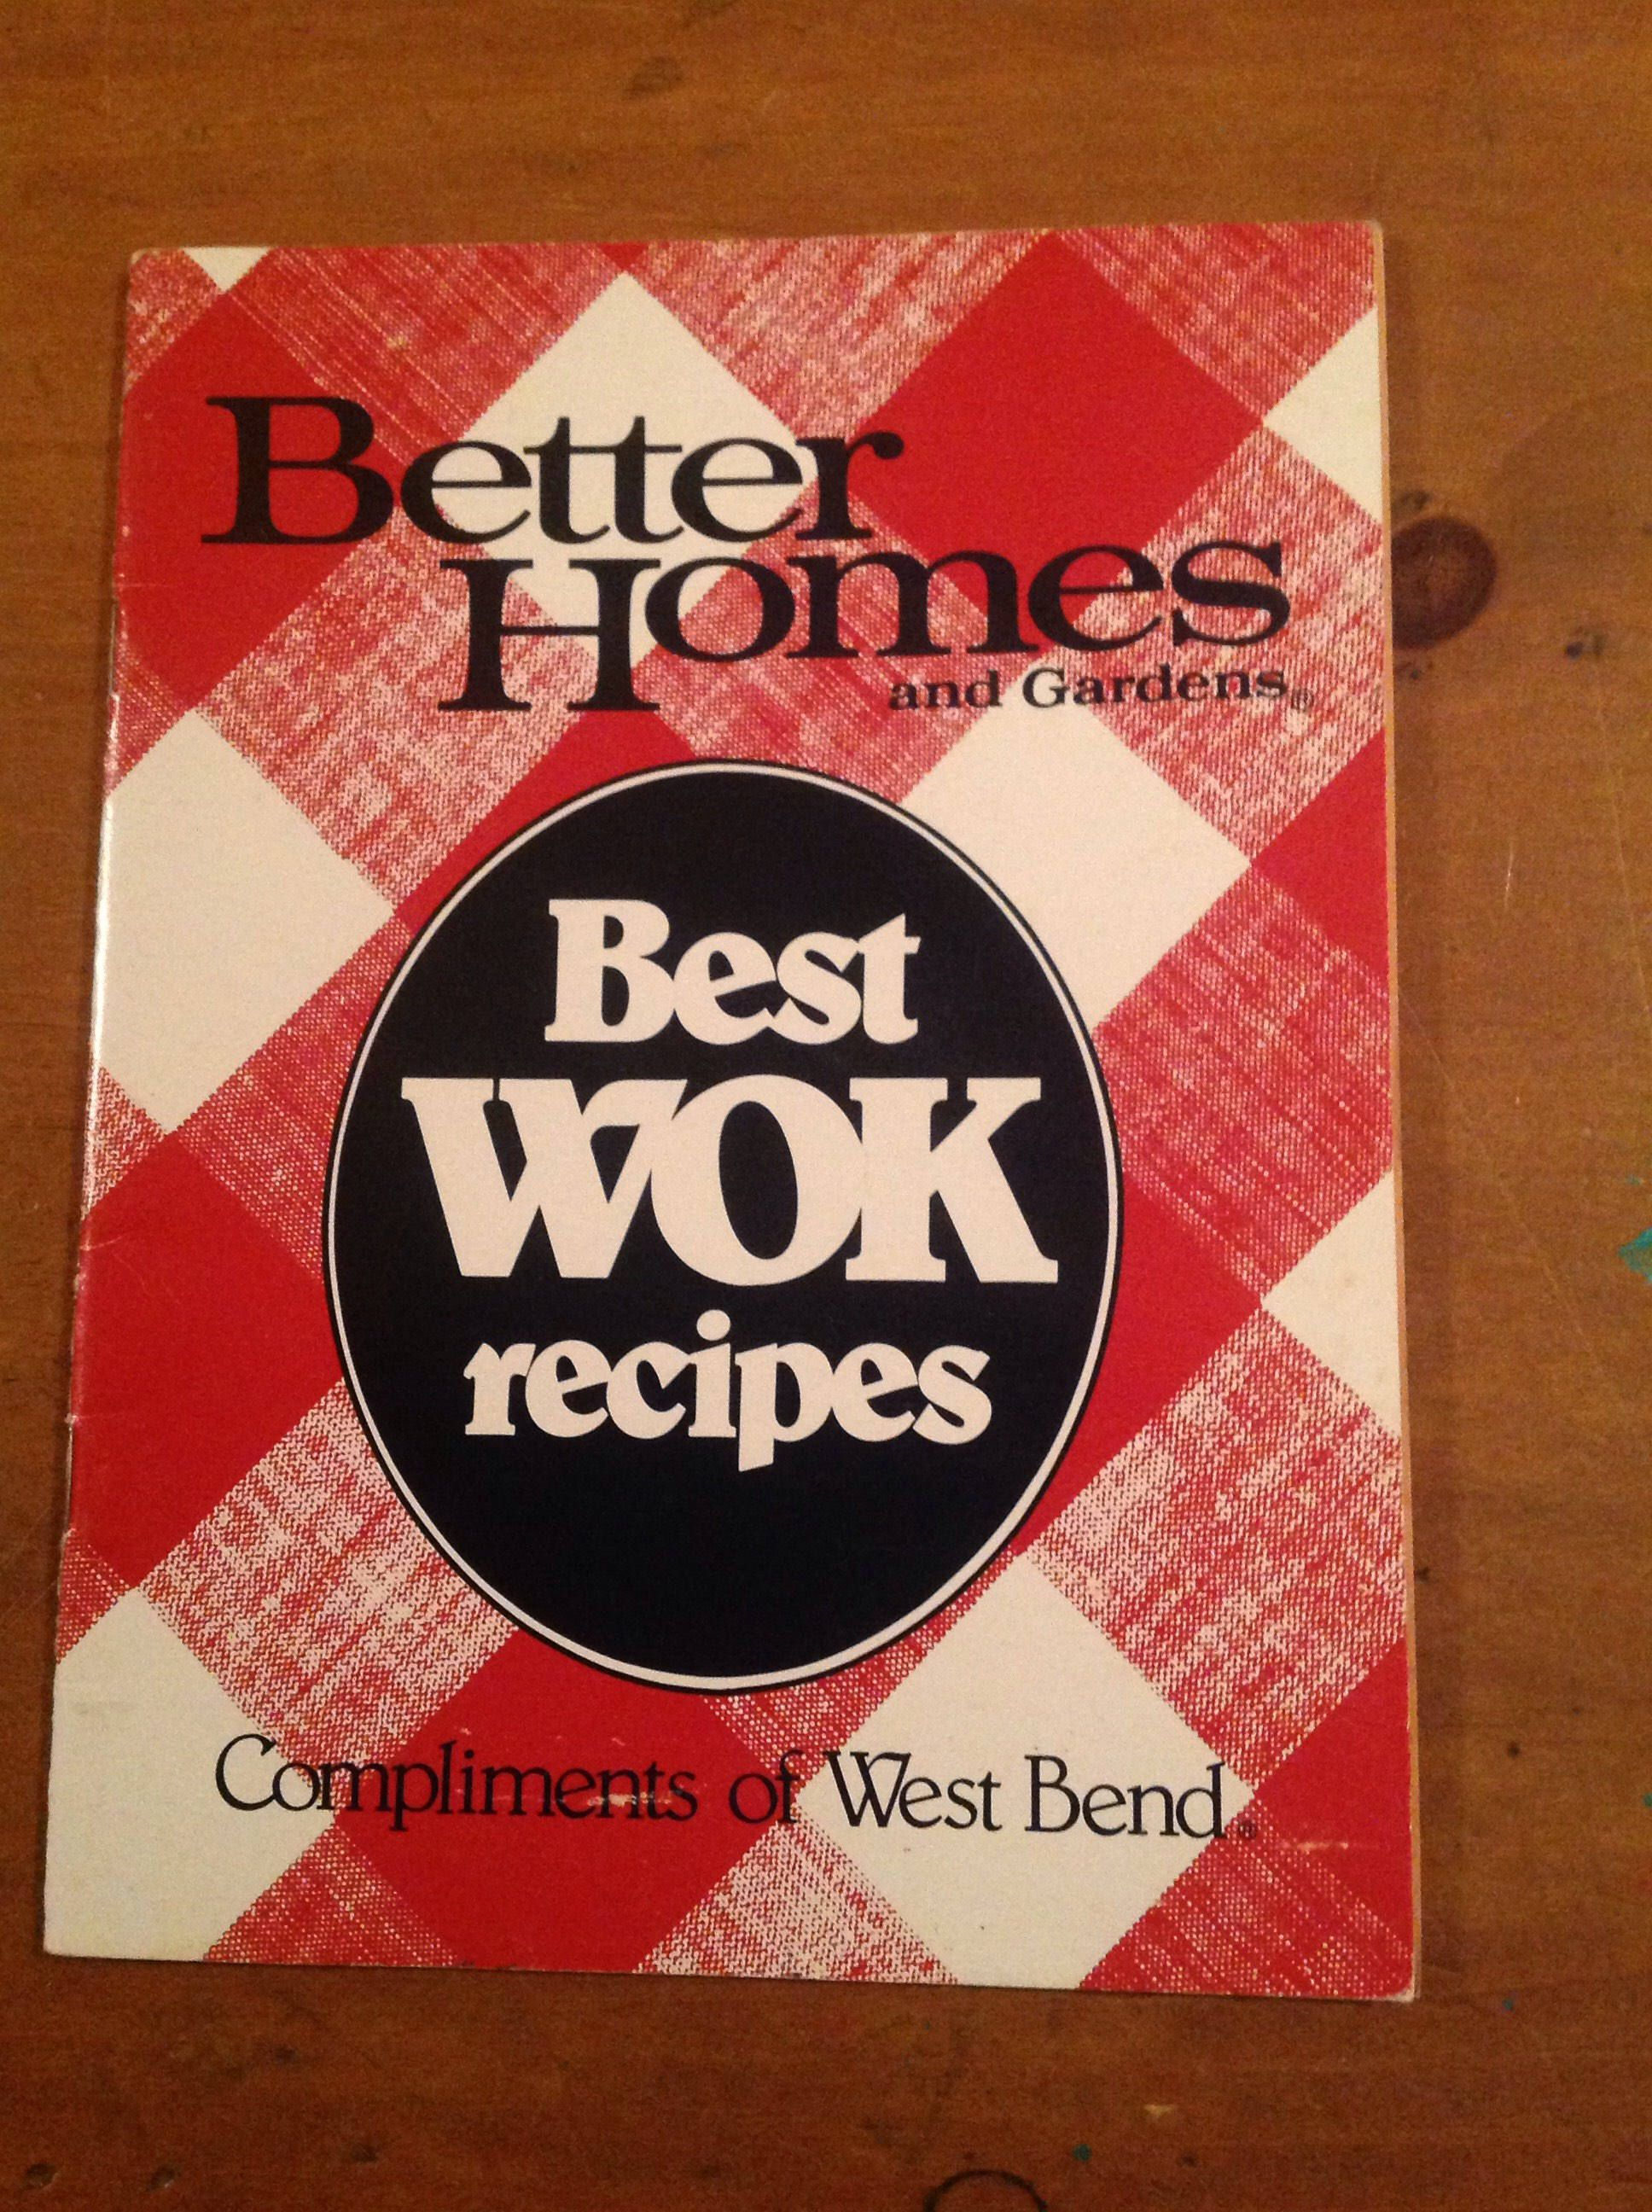 af03a0001392edc1d7cc491c4eeb36f9 - Better Homes And Gardens Red And White Cookbook